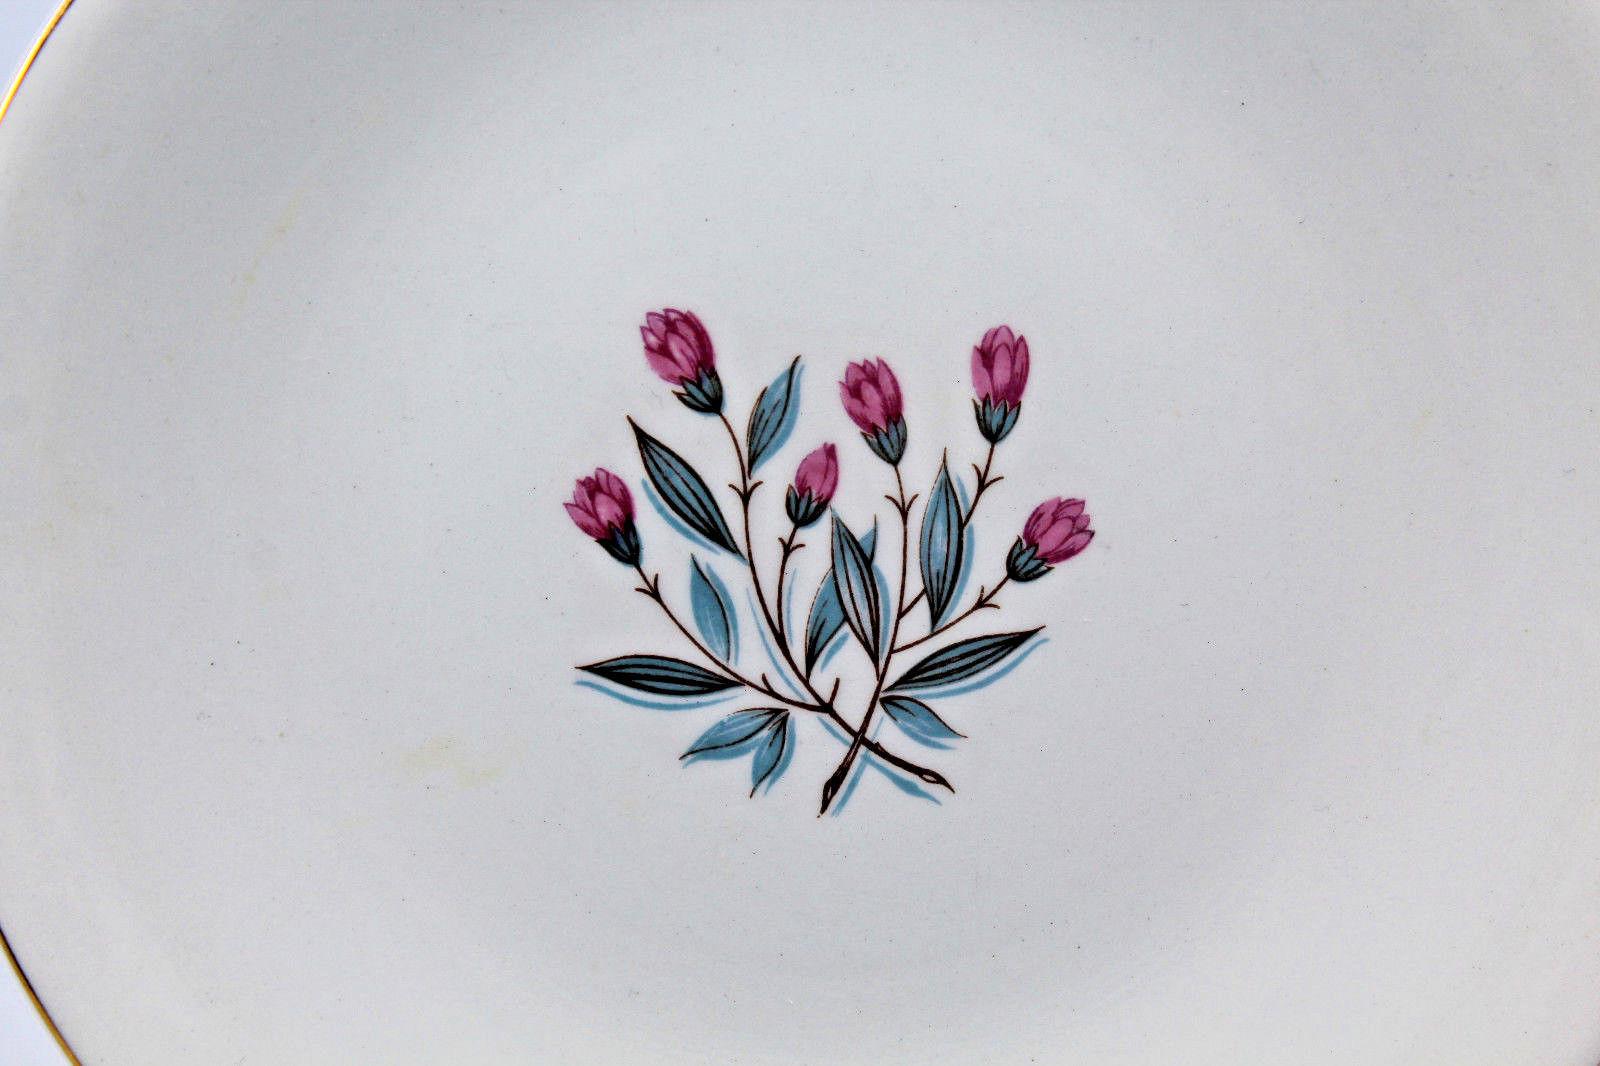 Enoch wedgwood tunstall ltd Bread and Butter Side Plate Pink Flower 17.5 cm image 4